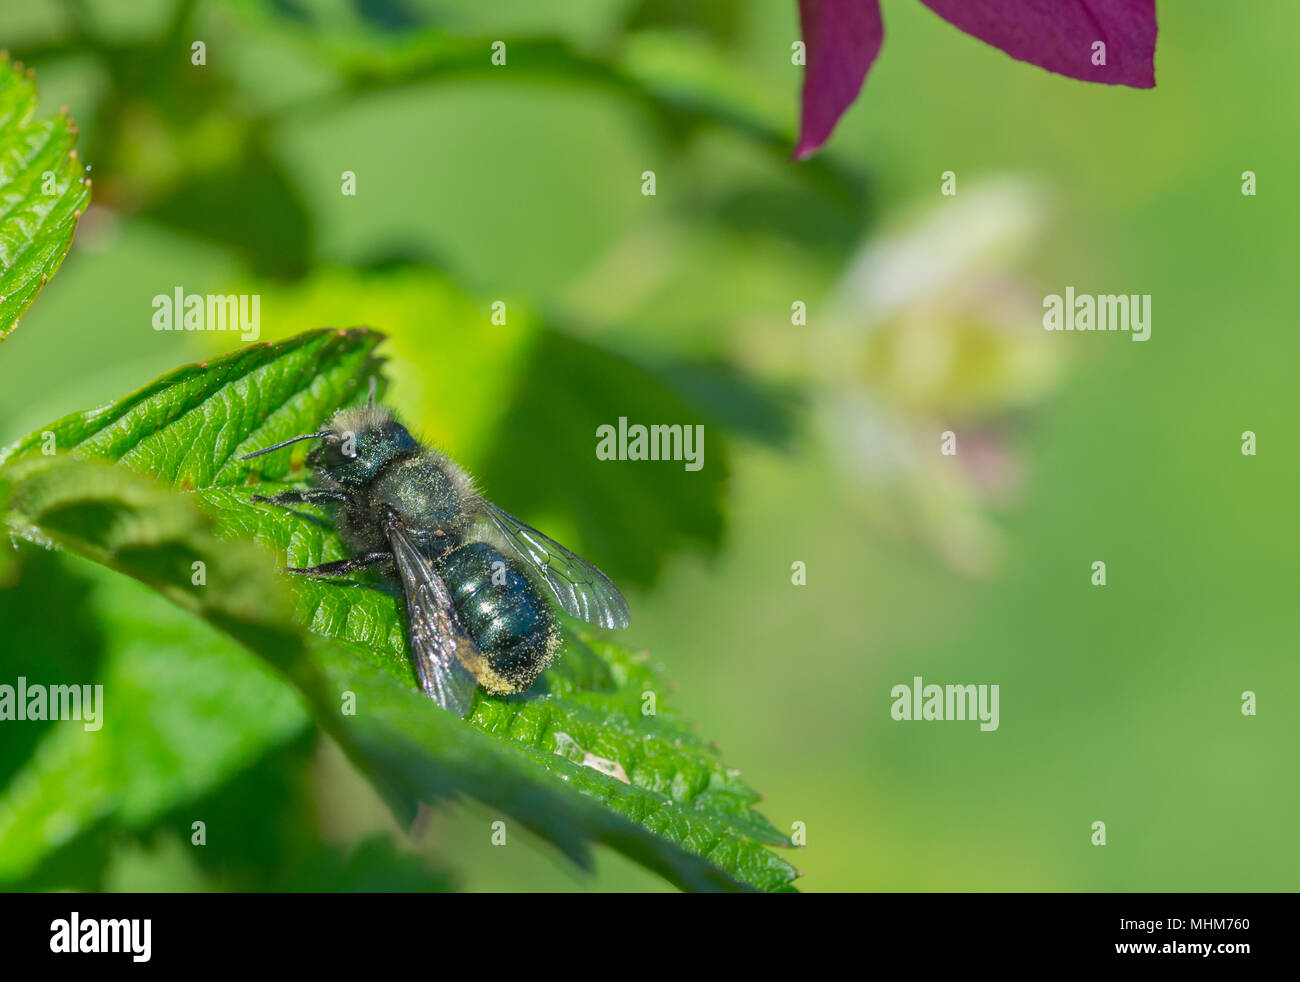 A Blue Orchard Mason Bee (Osmia lignaria) resting in the sun on the green leaf of a Salmonberry bush (Rubus spectabilis). - Stock Image